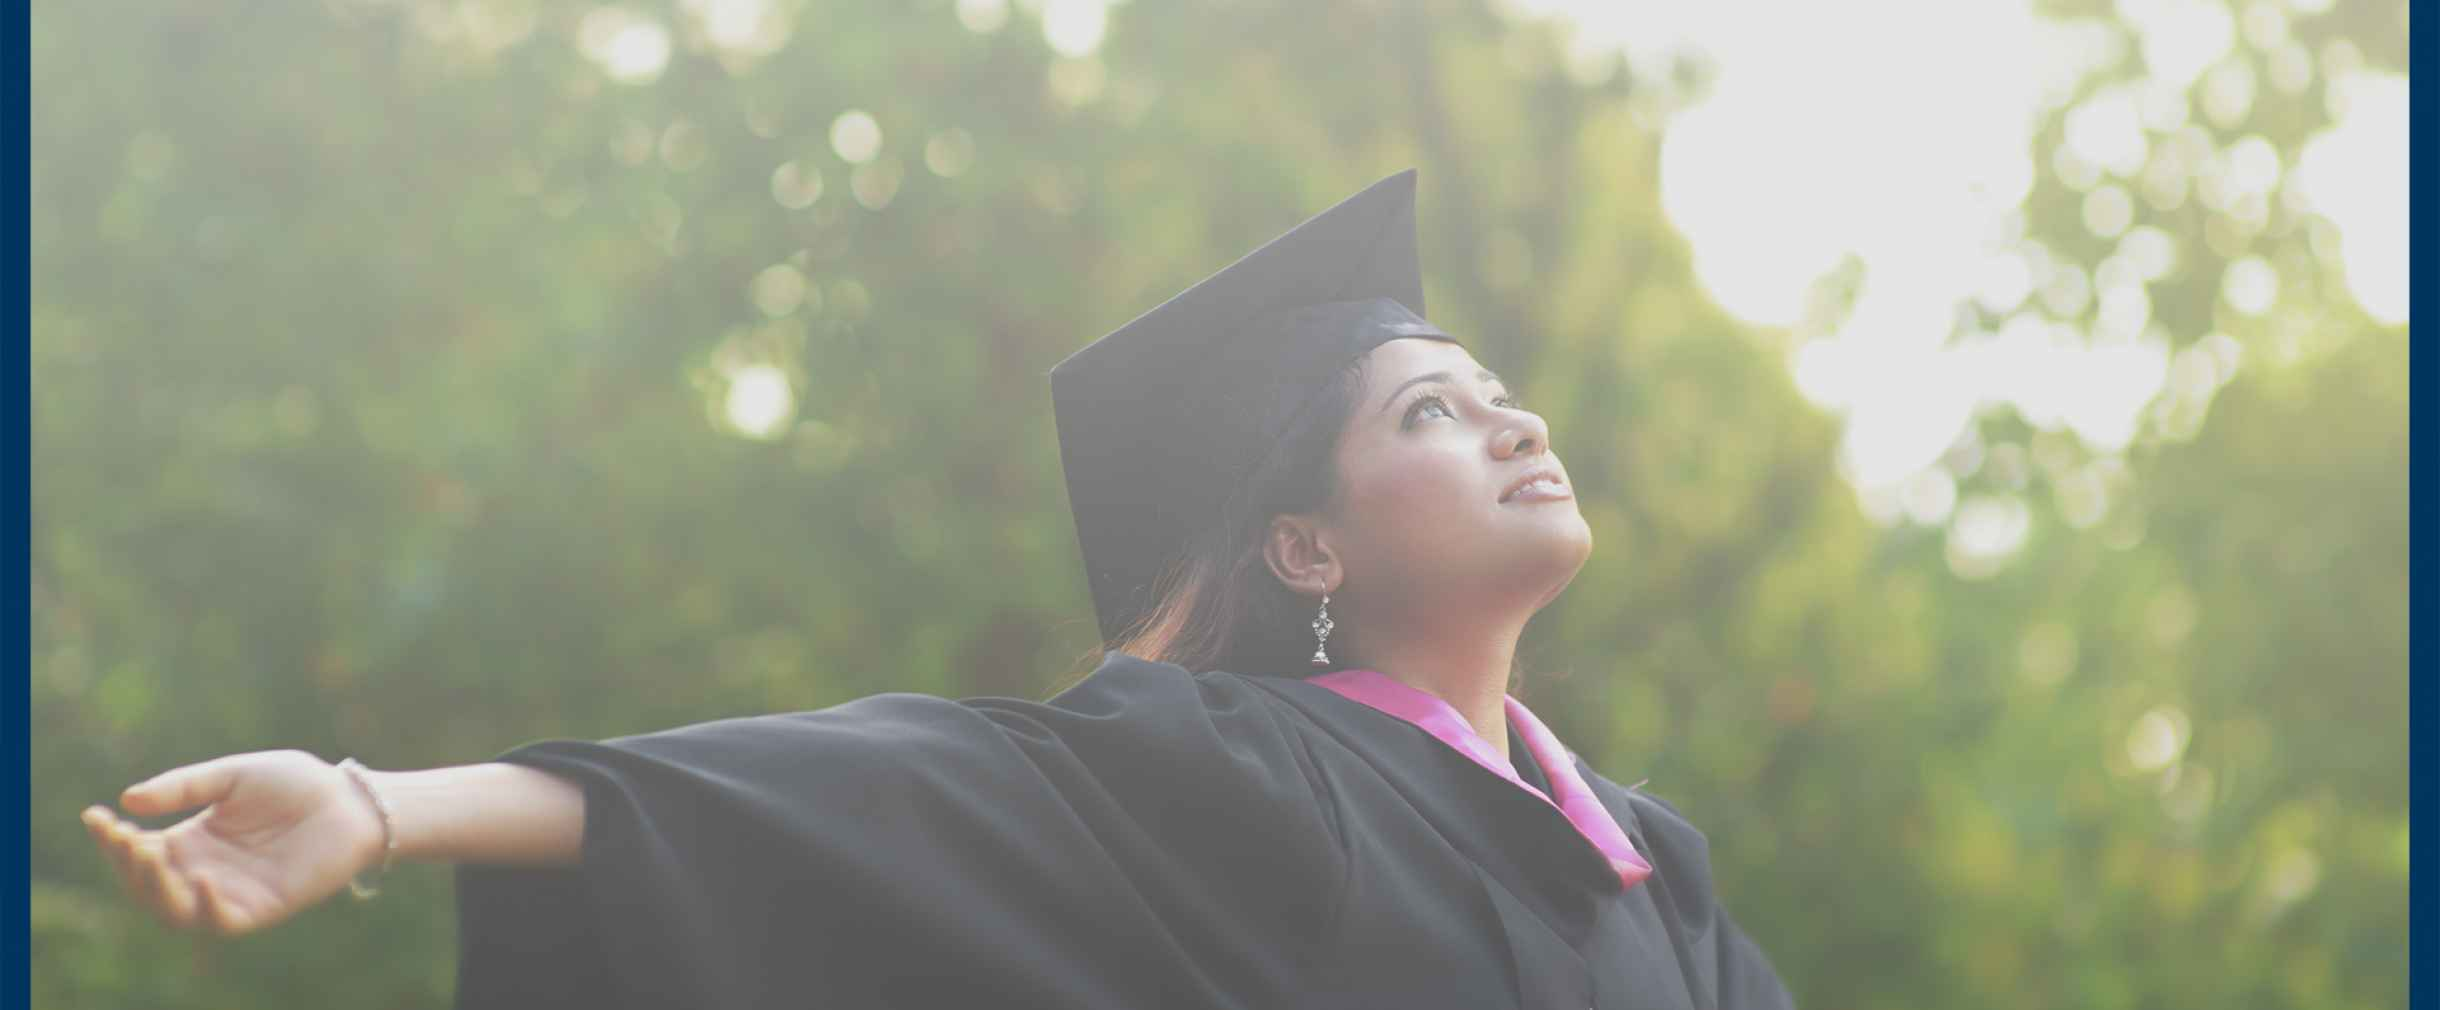 Young woman wearing a graduation gown